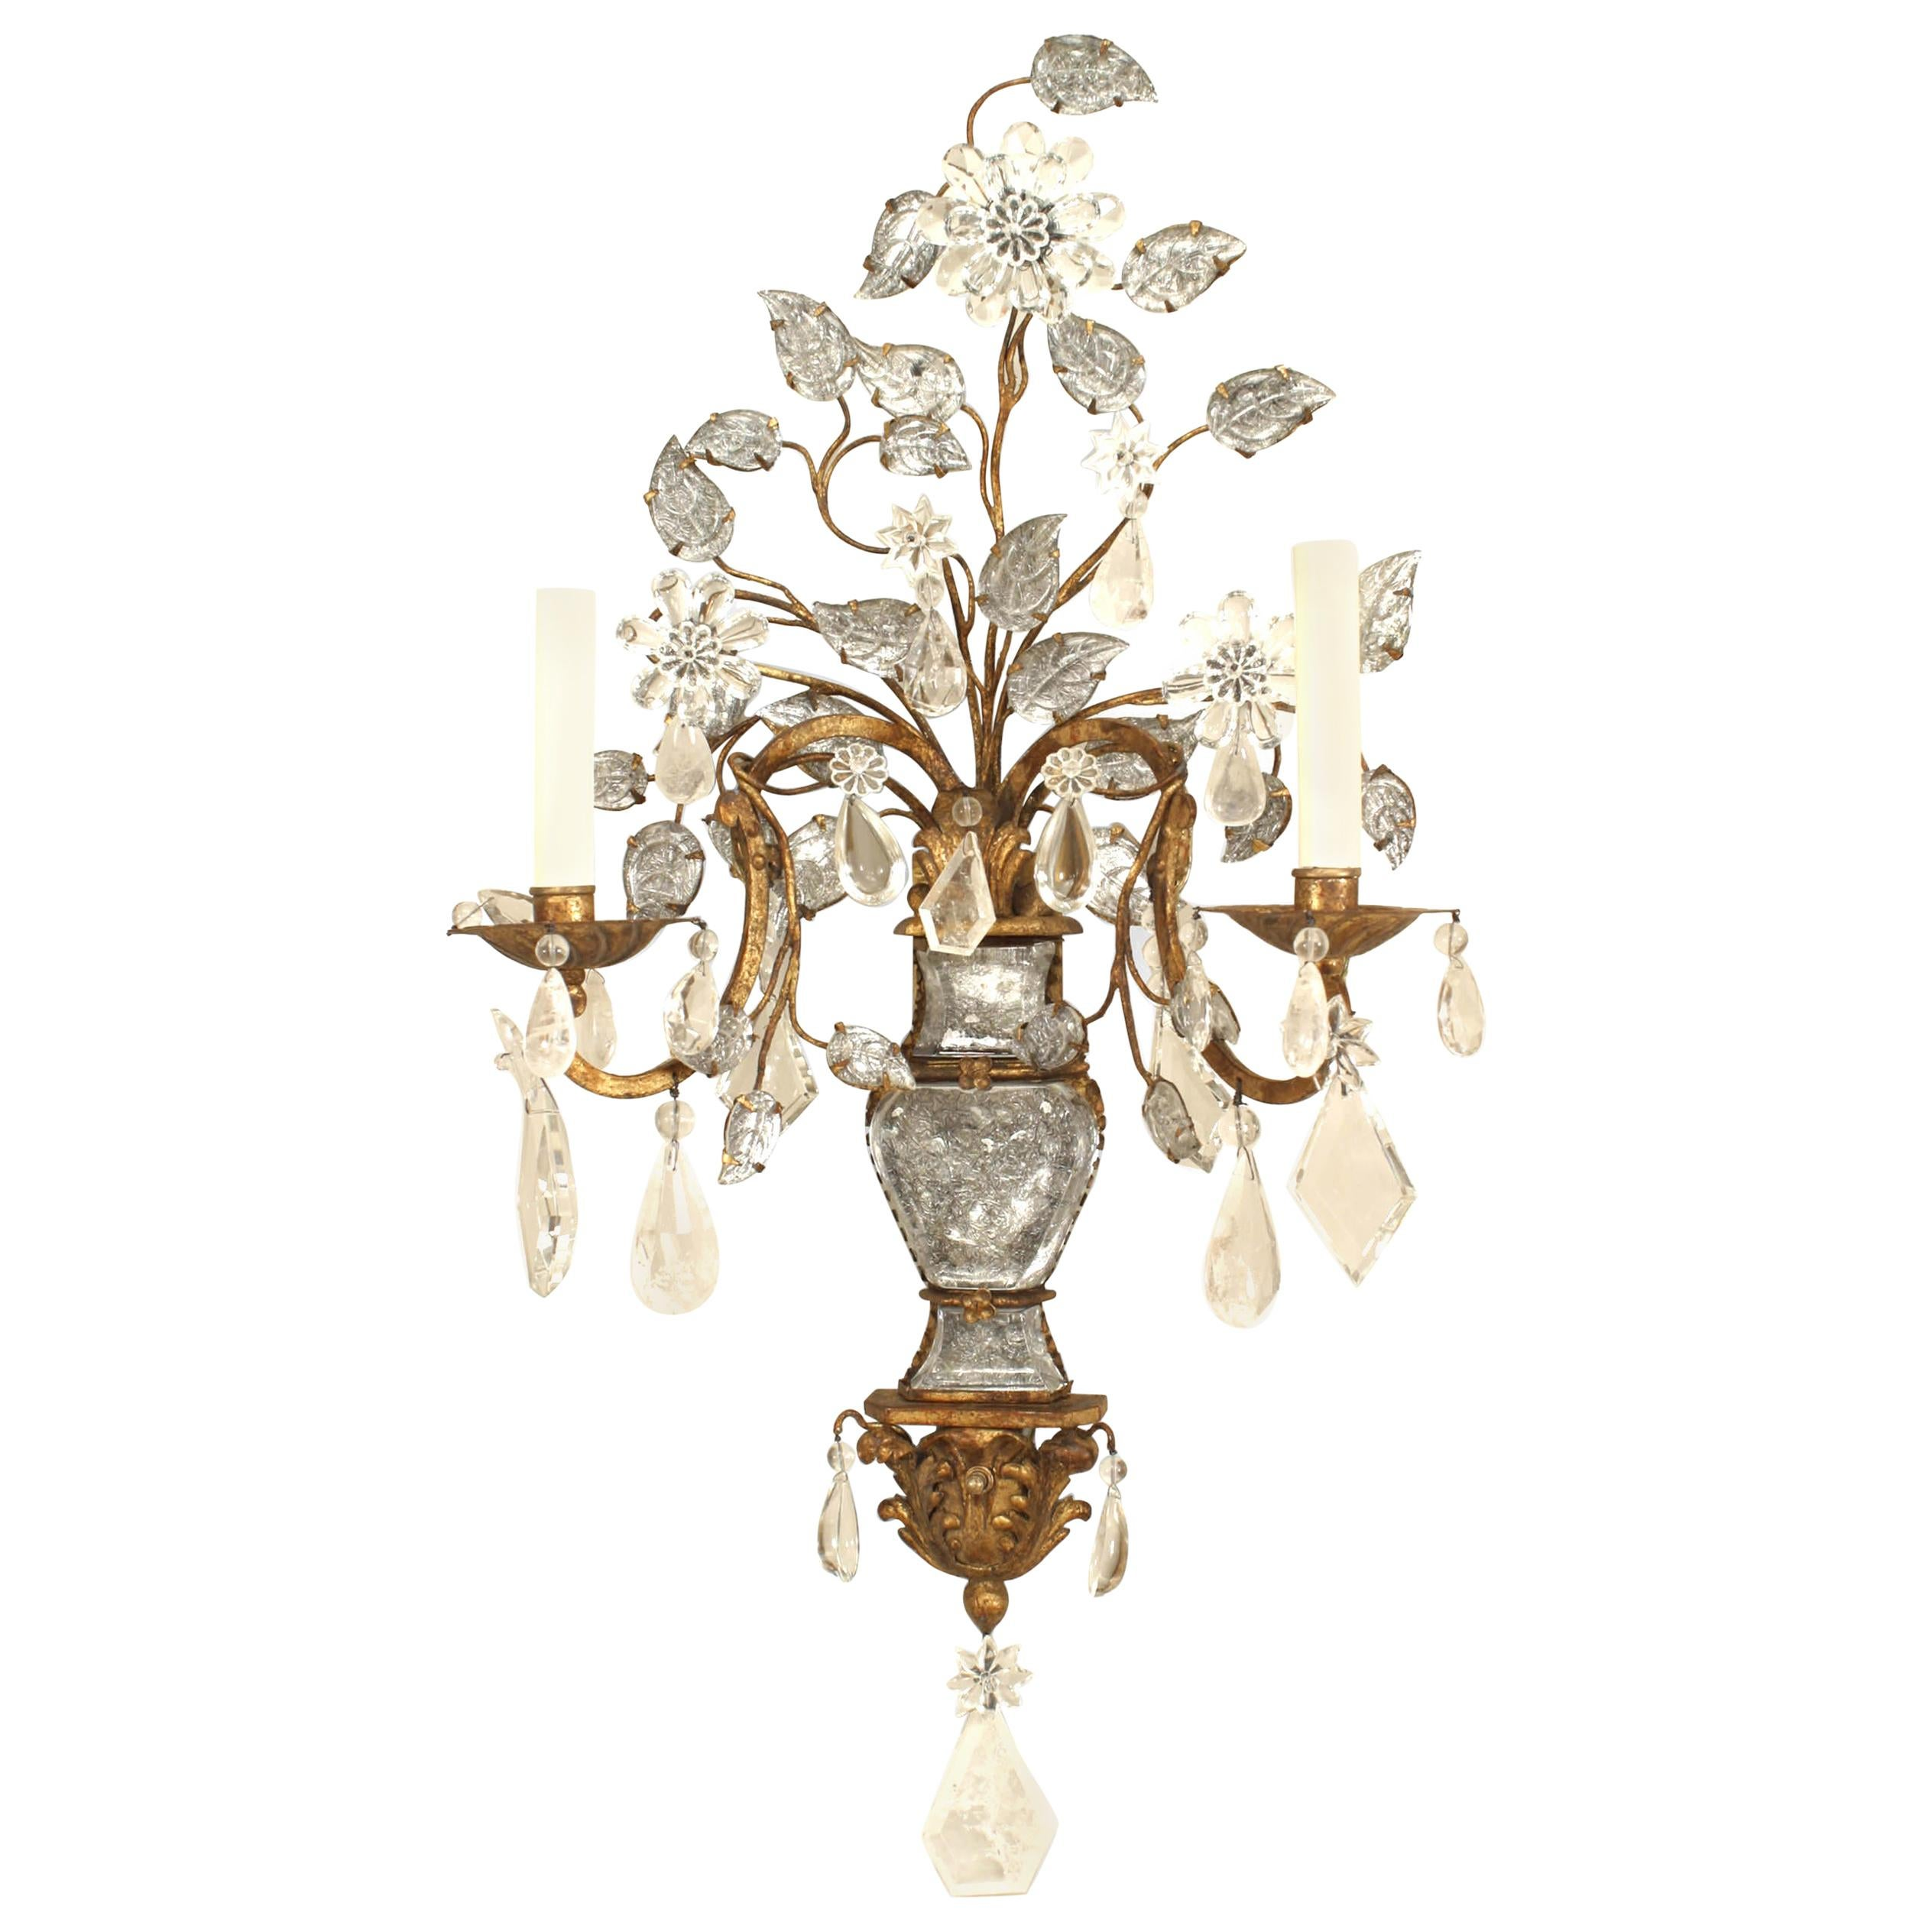 Maison Bagues French Art Deco Gilt Metal and Crystal Wall Sconces